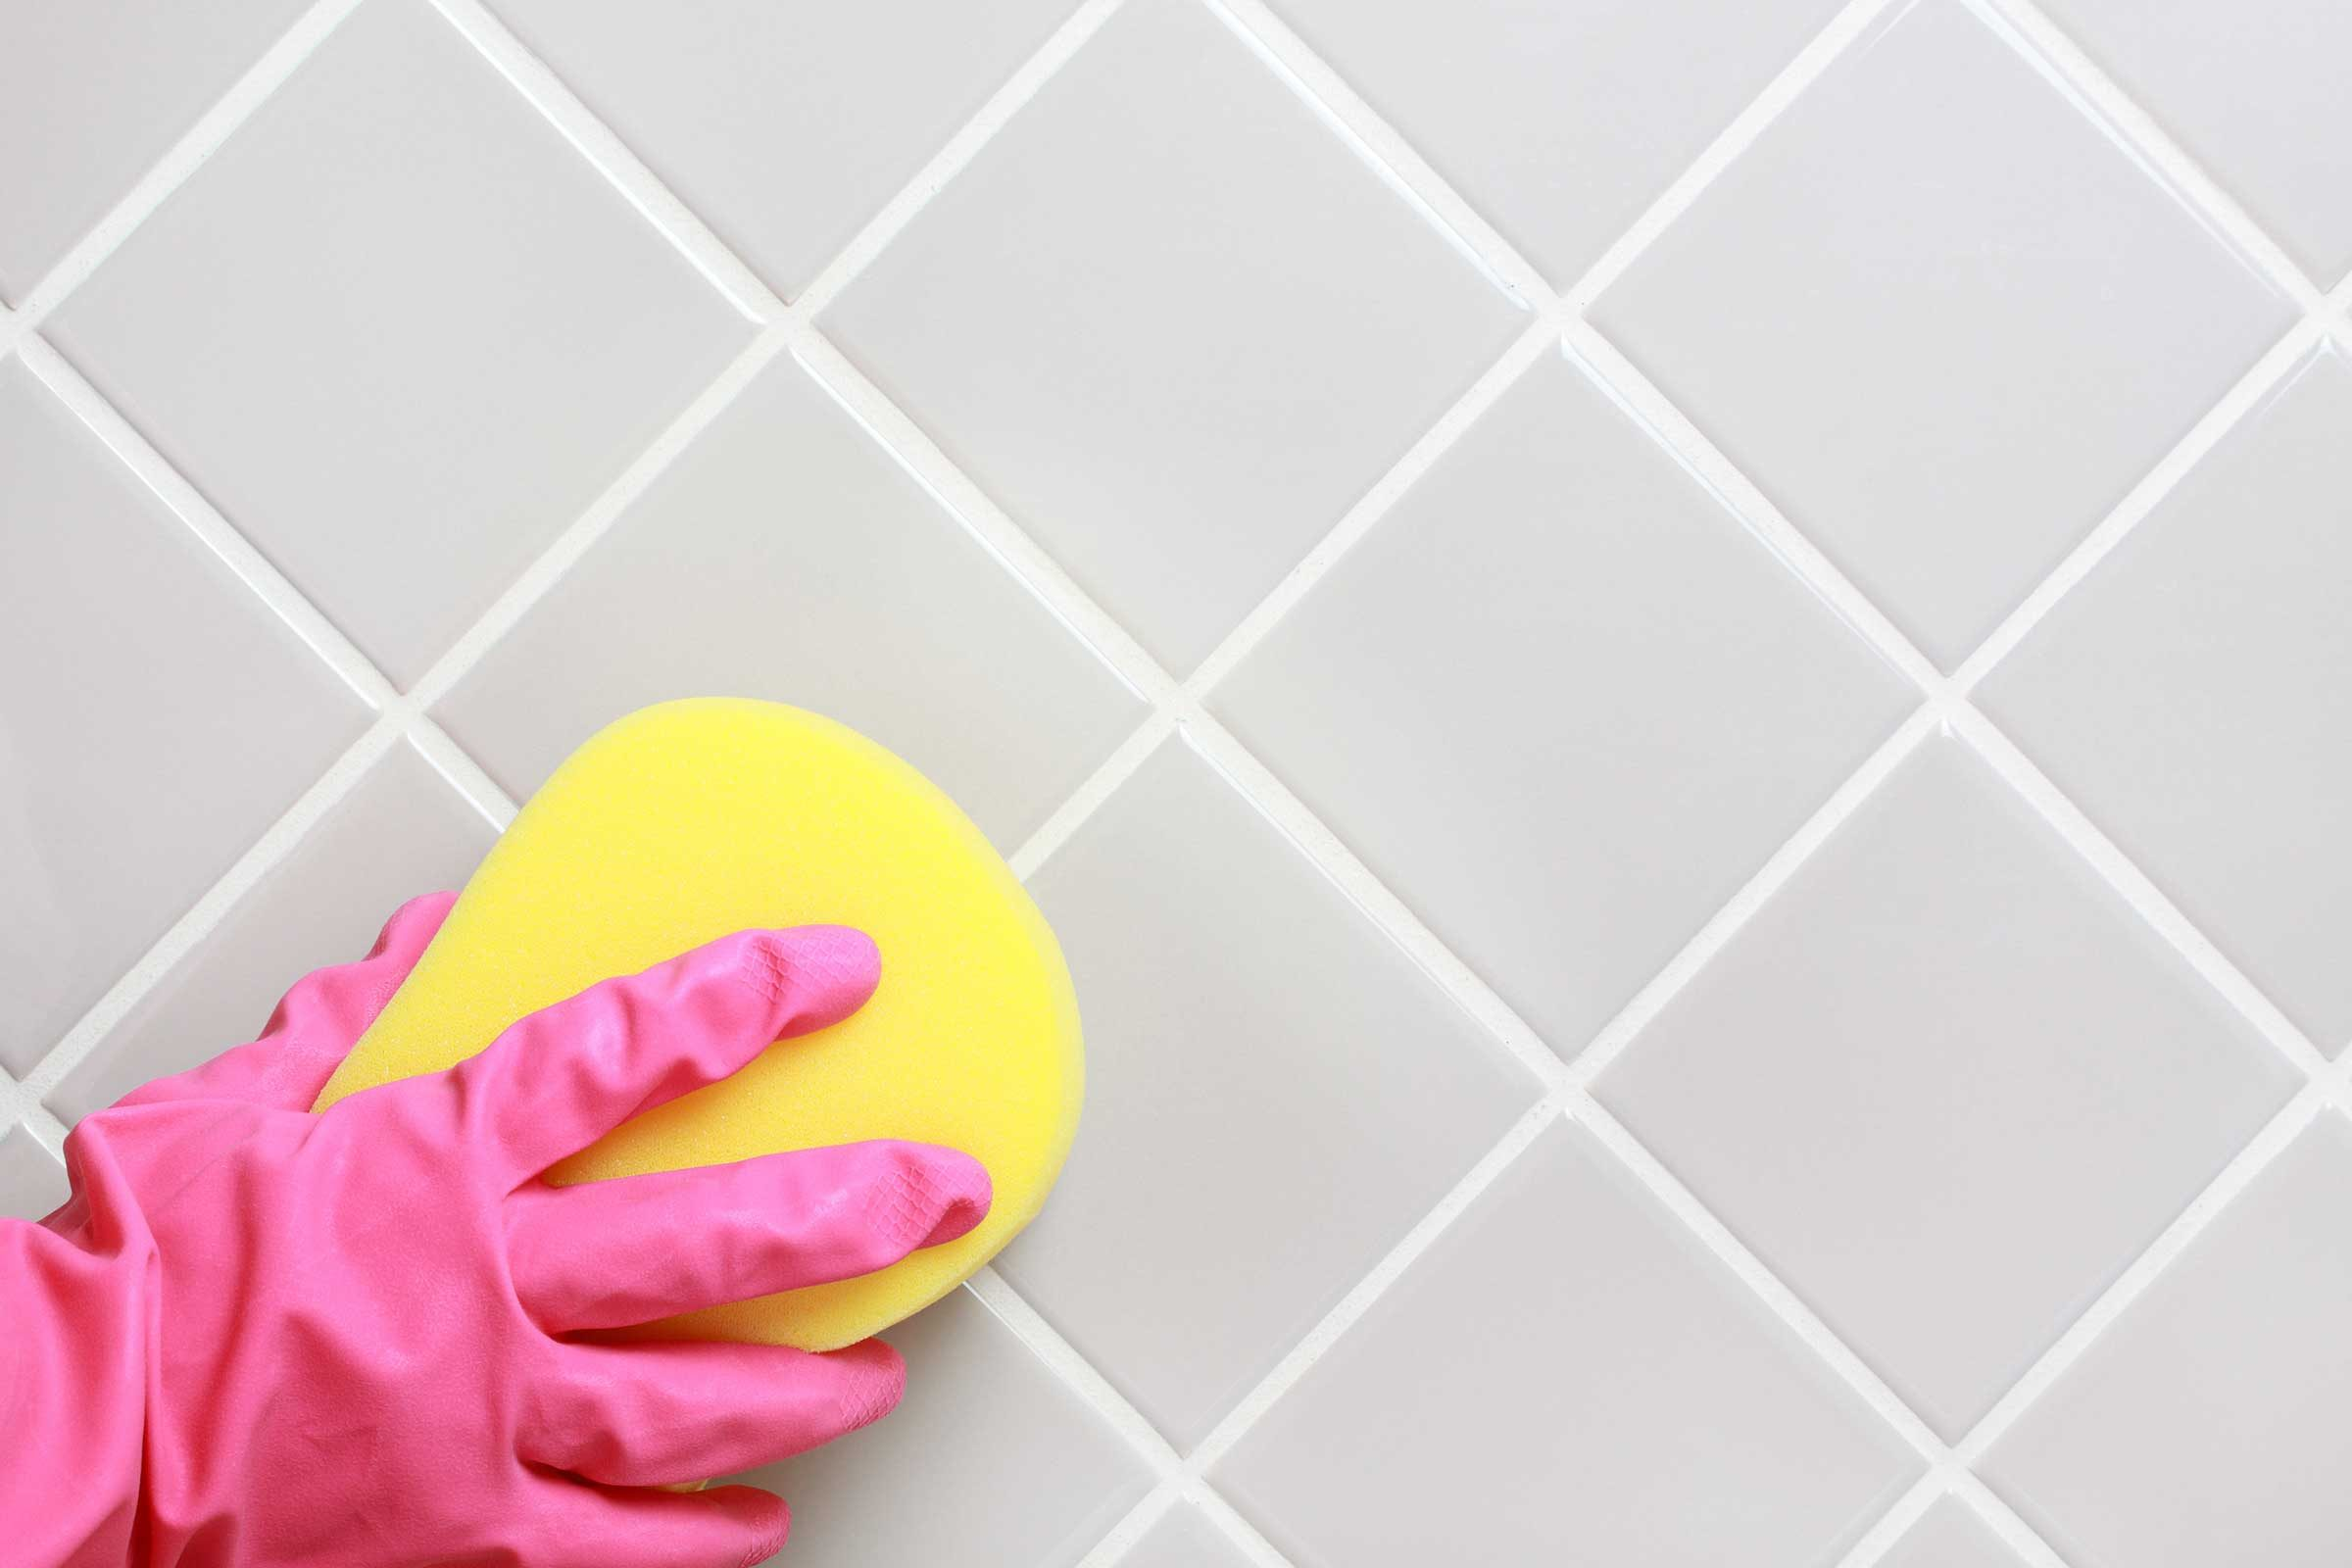 2. Make a Nontoxic Bathroom Cleaner